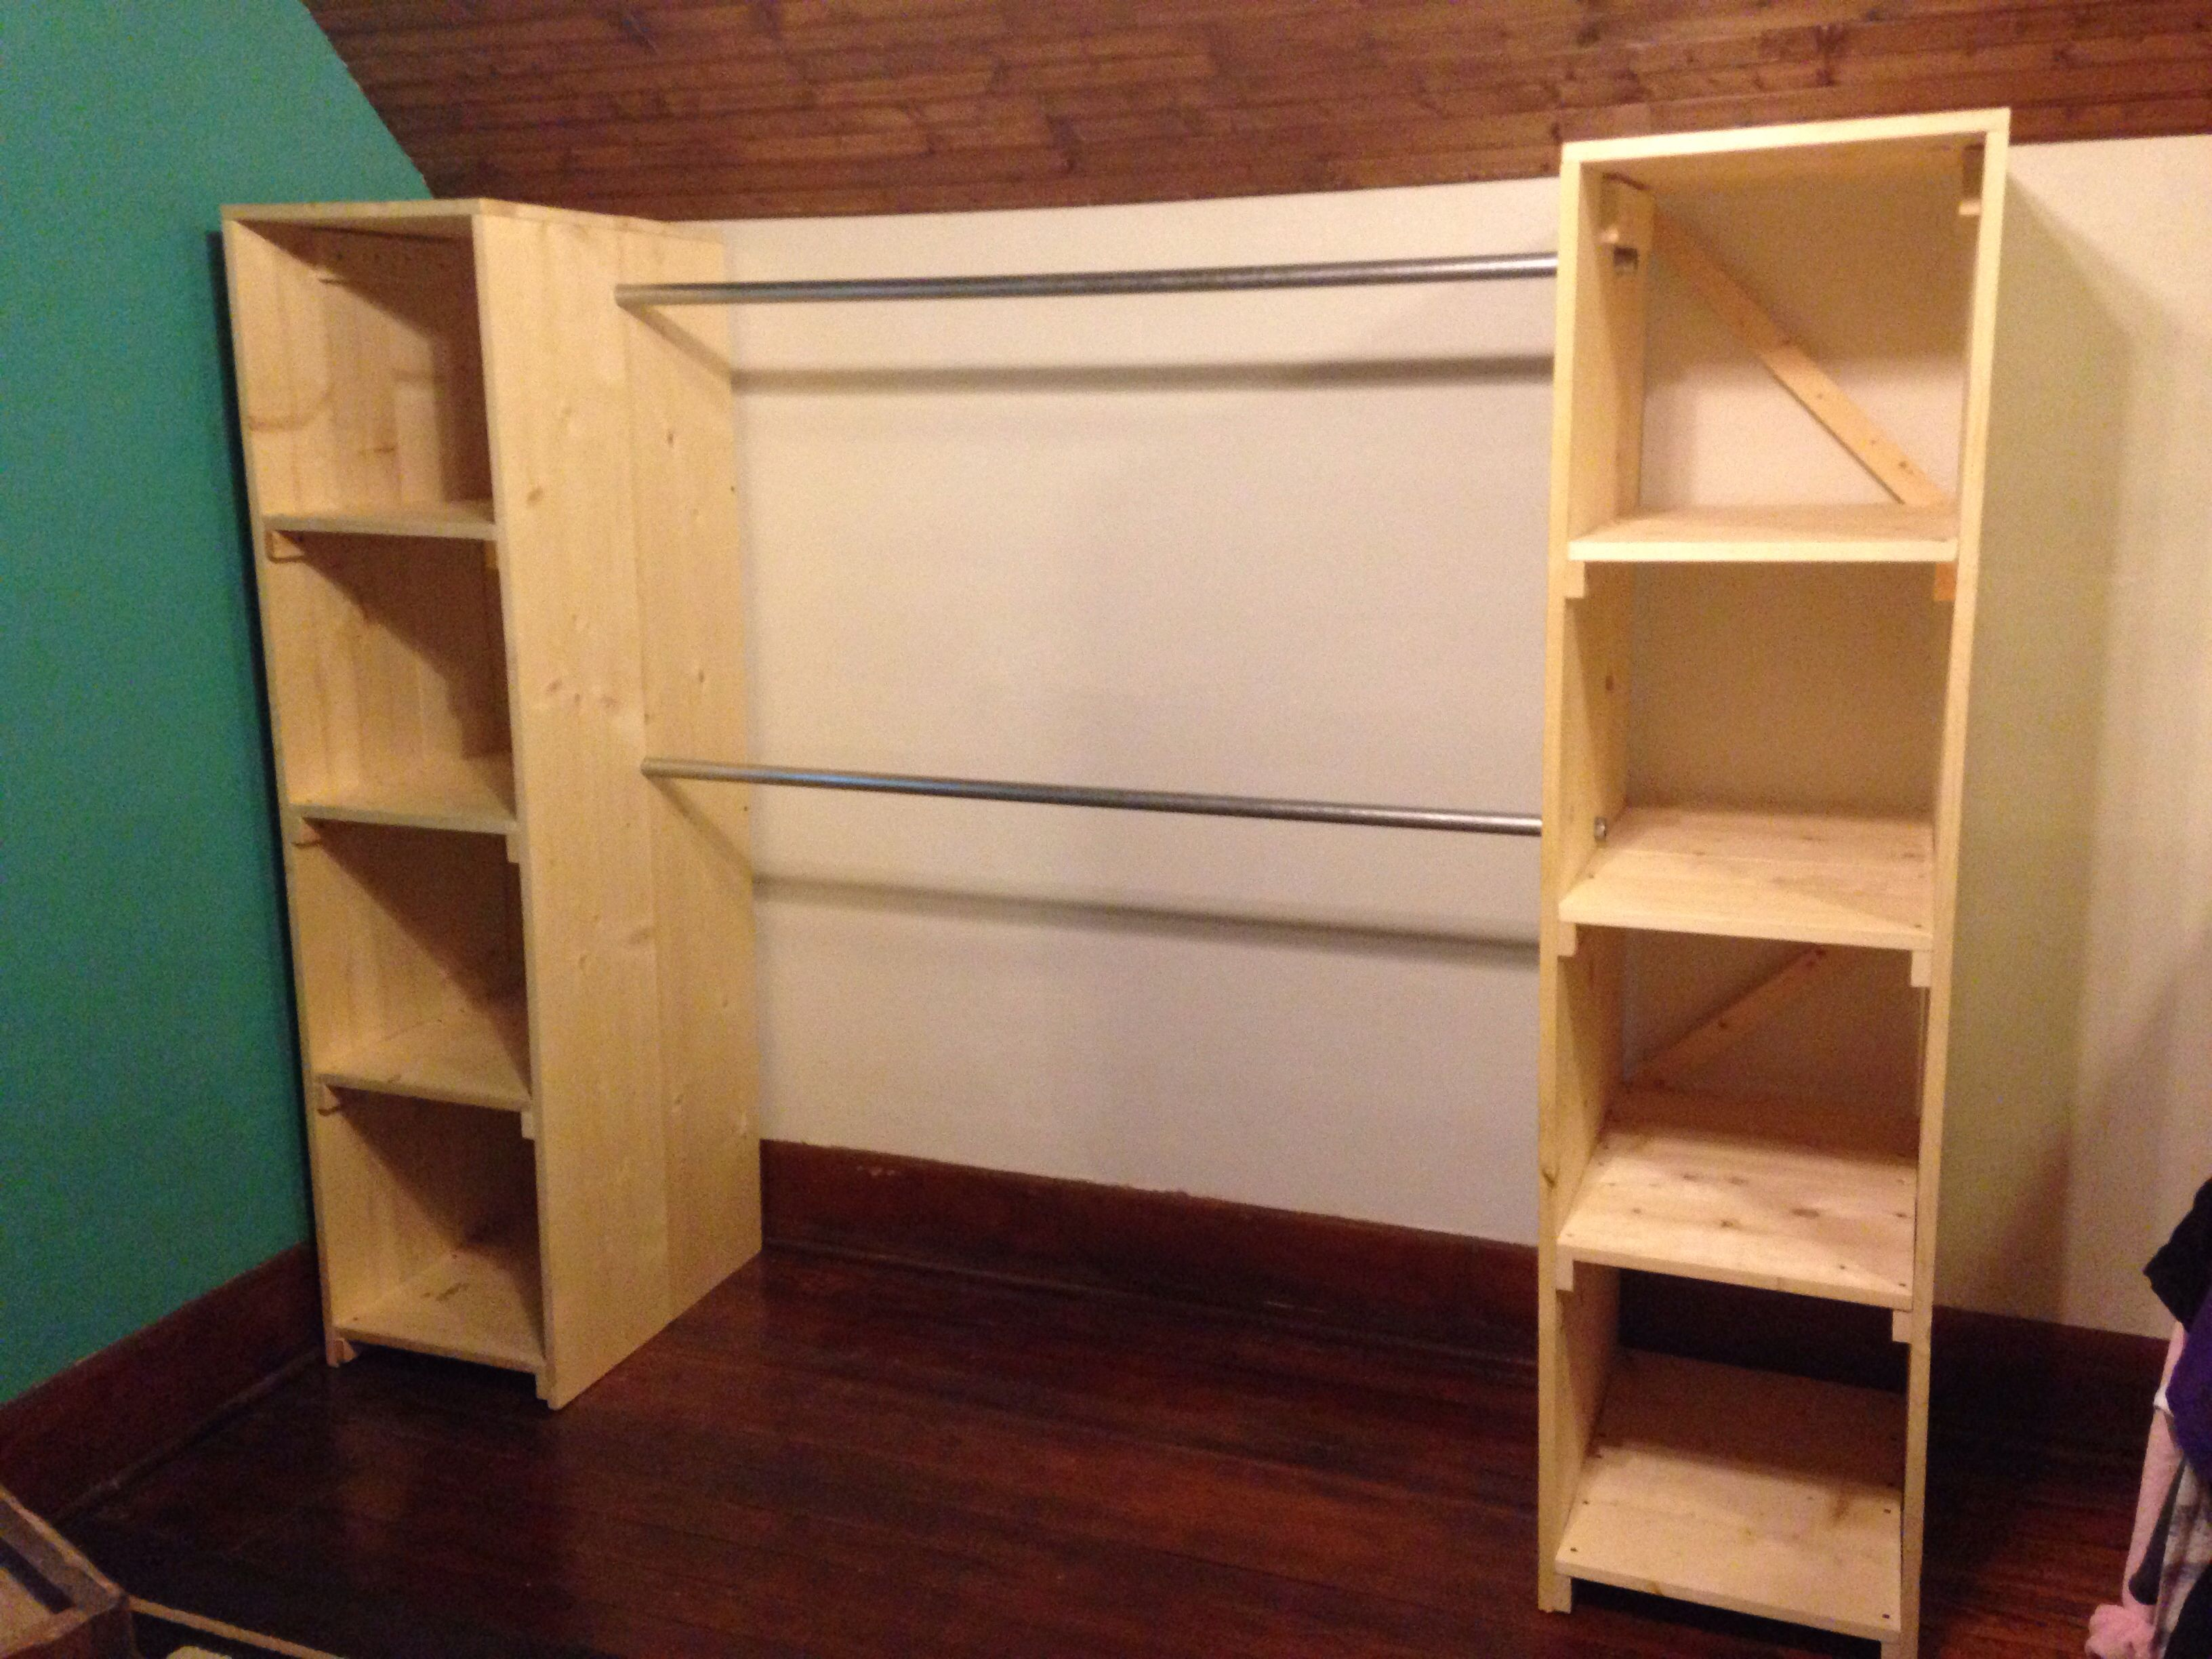 My Free Standing Closet Is Finished! Itu0027s Perfect For Our Small Home With  No Storage Space.